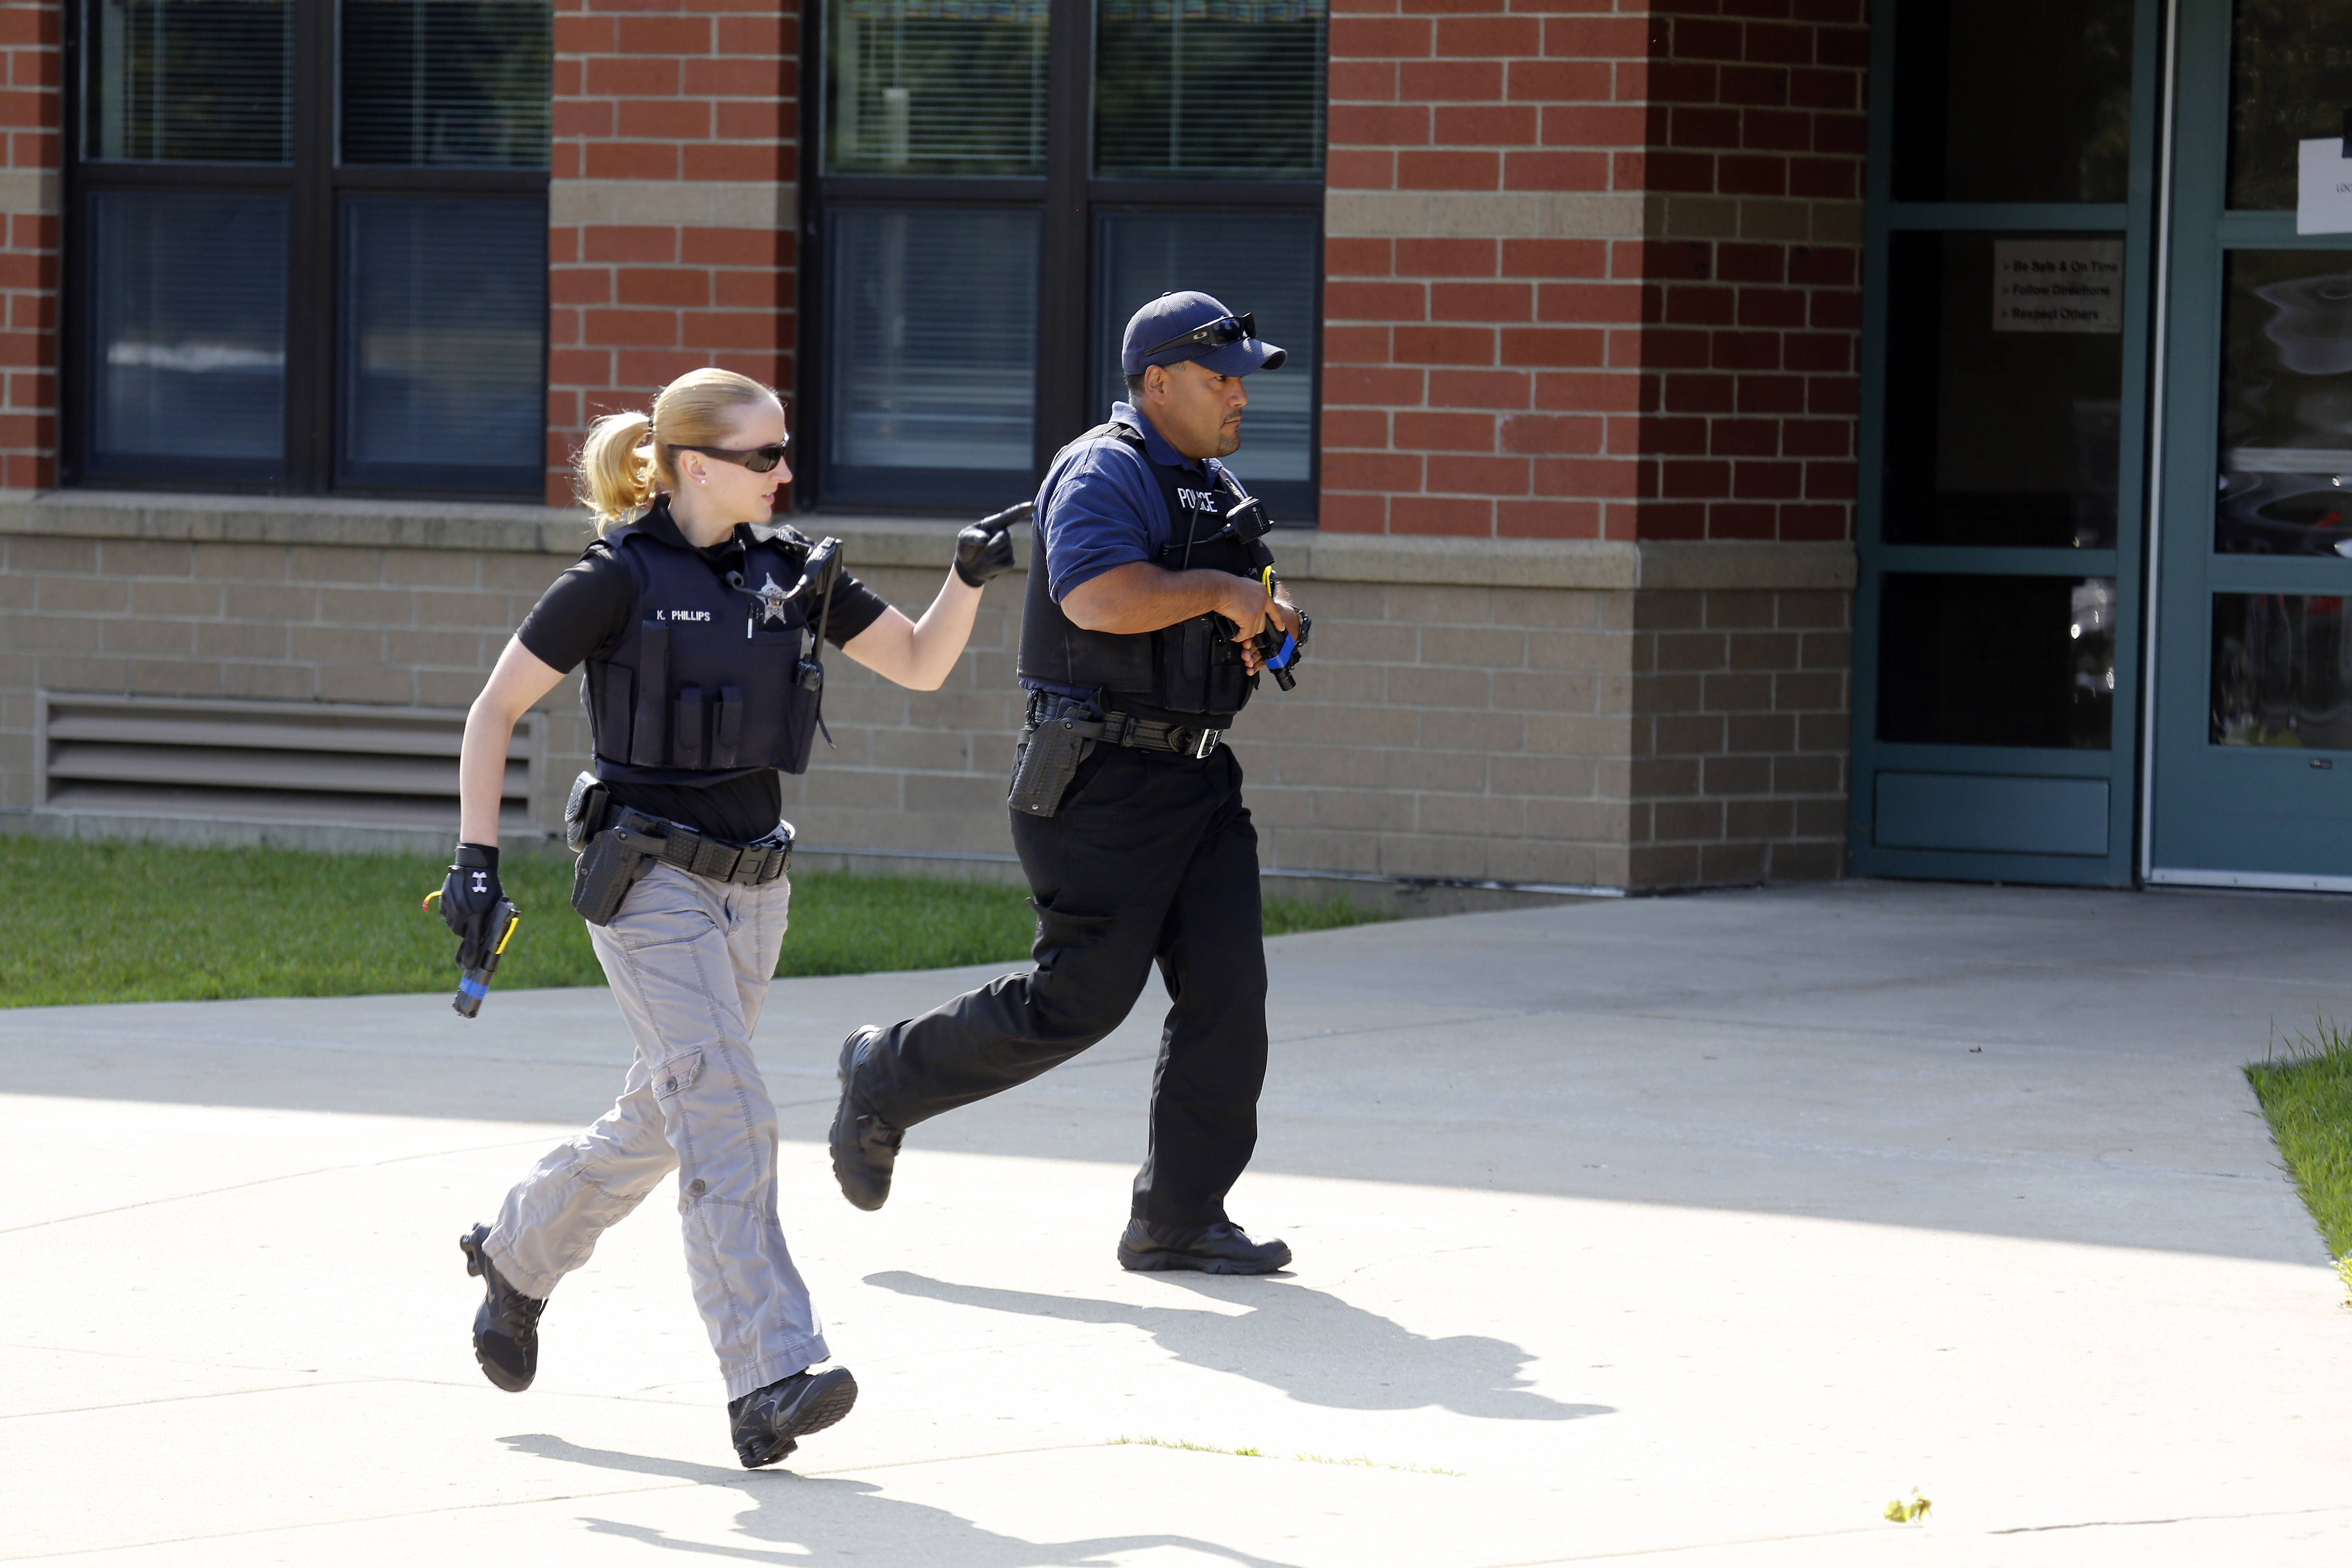 Elgin police officers move into position during Thursday's training at Otter Creek Elementary School. About 200 role players also took part.